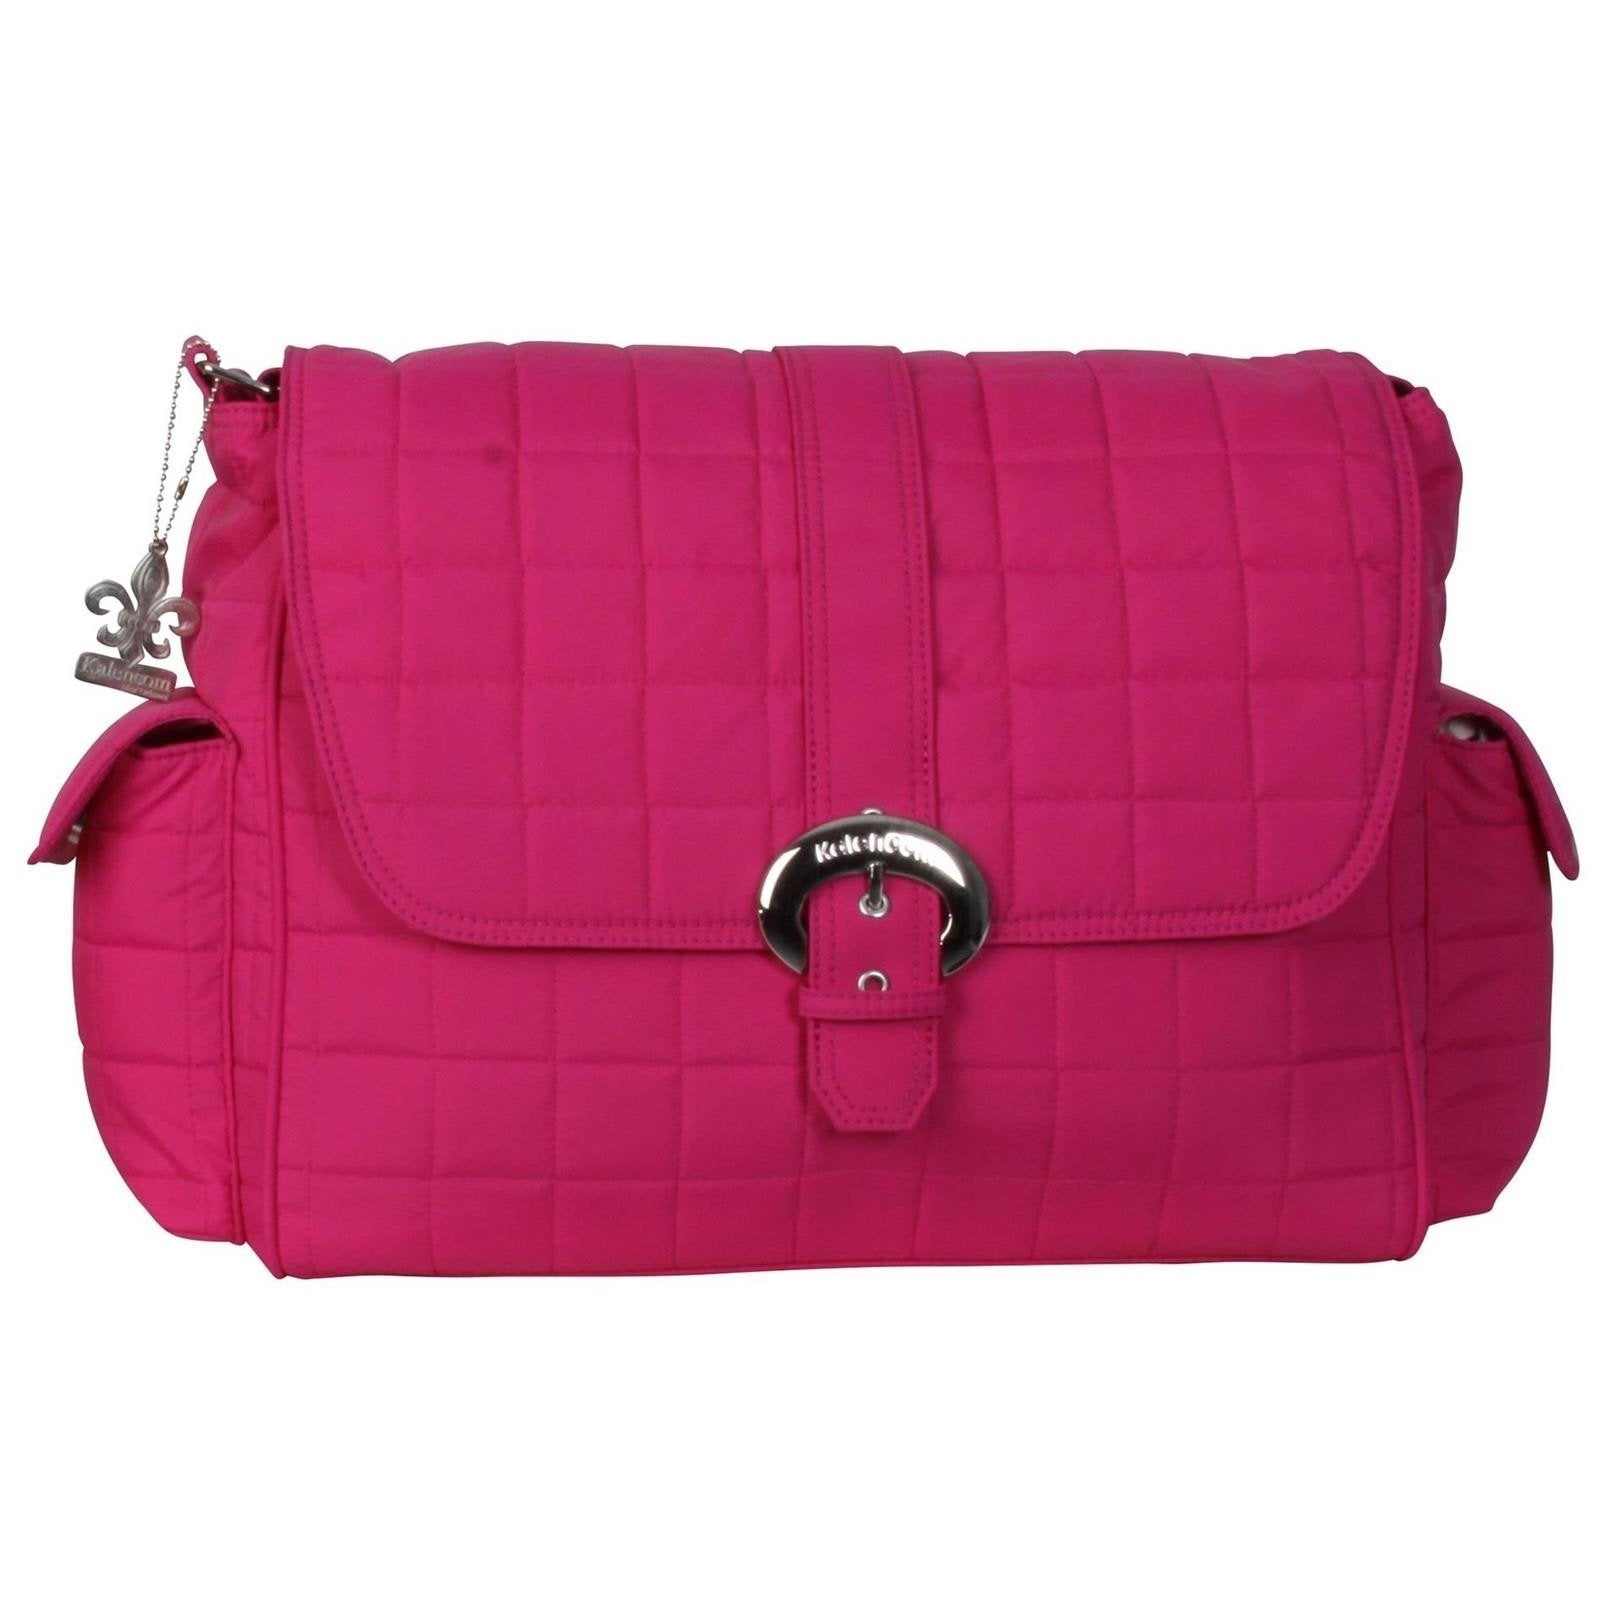 Fuchsia Quilted Nylon Buckle Diaper Bag | Style 2960 - Kalencom-Diaper Bags-Default-Jack and Jill Boutique